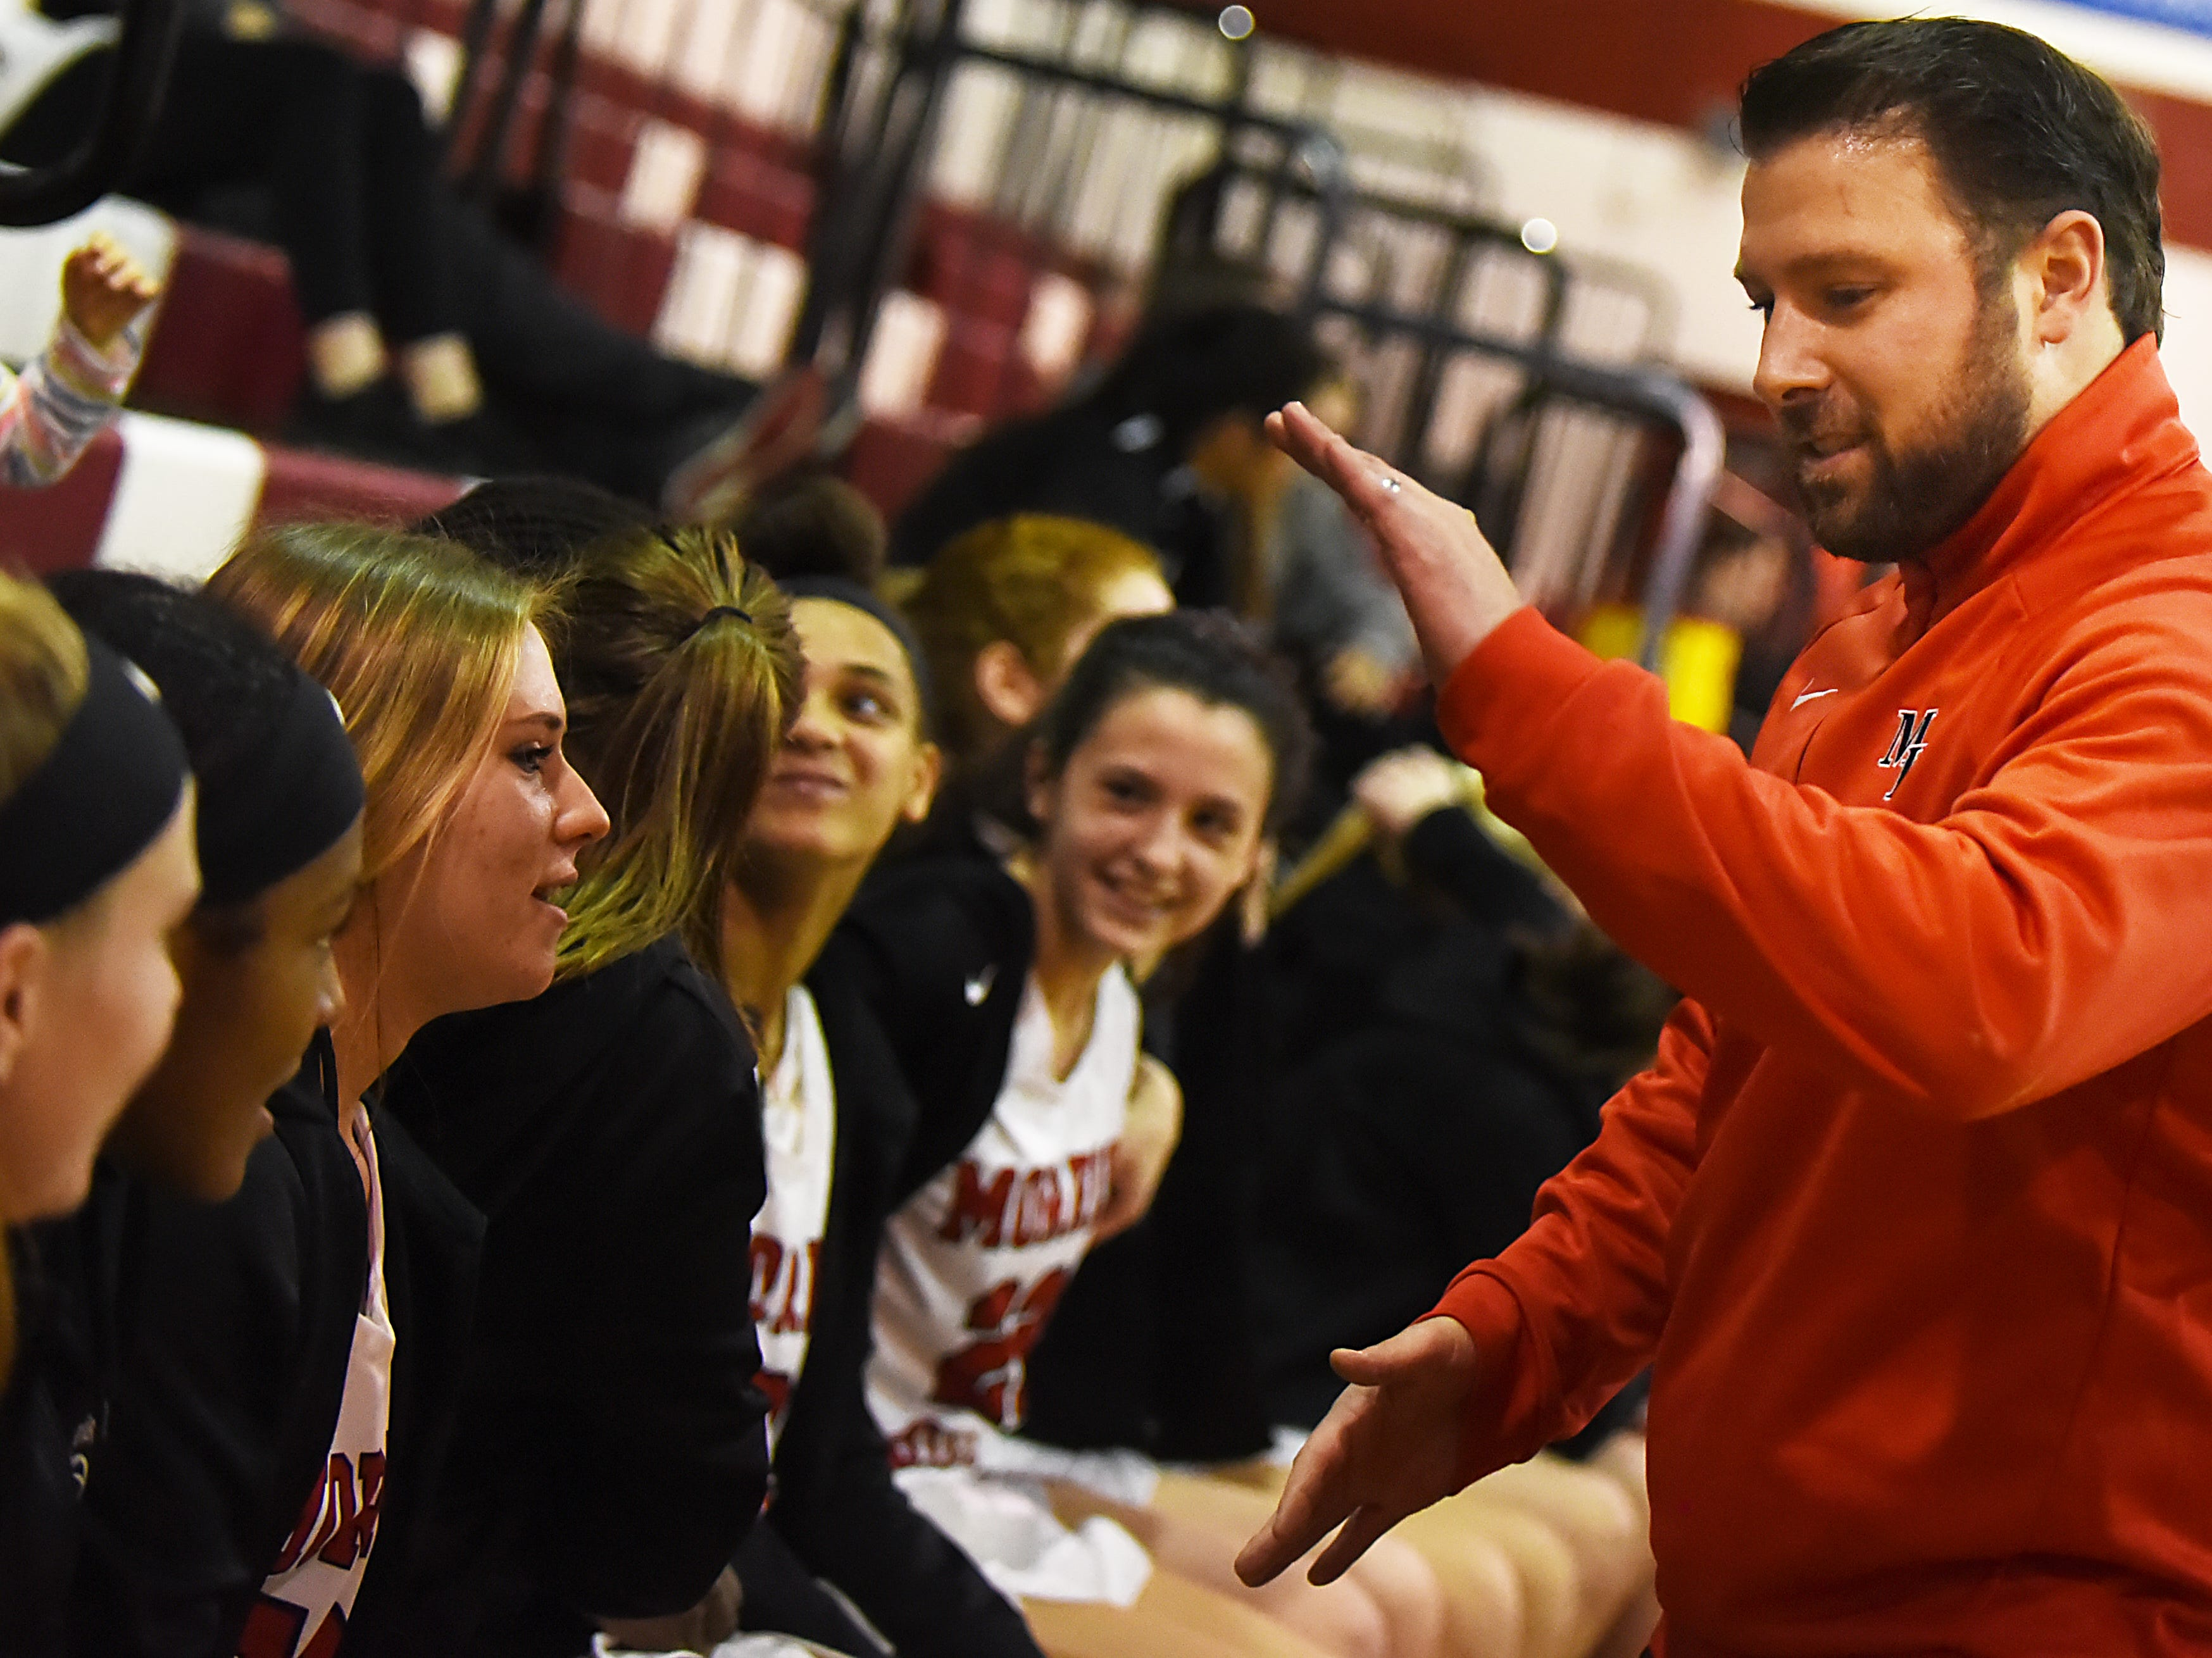 Boonton Vs. Morris Hills girls basketball game at the Morris Hills Holiday Tournament in Rockaway on Friday December 28, 2018. Morris Hills coach Brian Dillon congratulates the team on their 53 to 27 win.